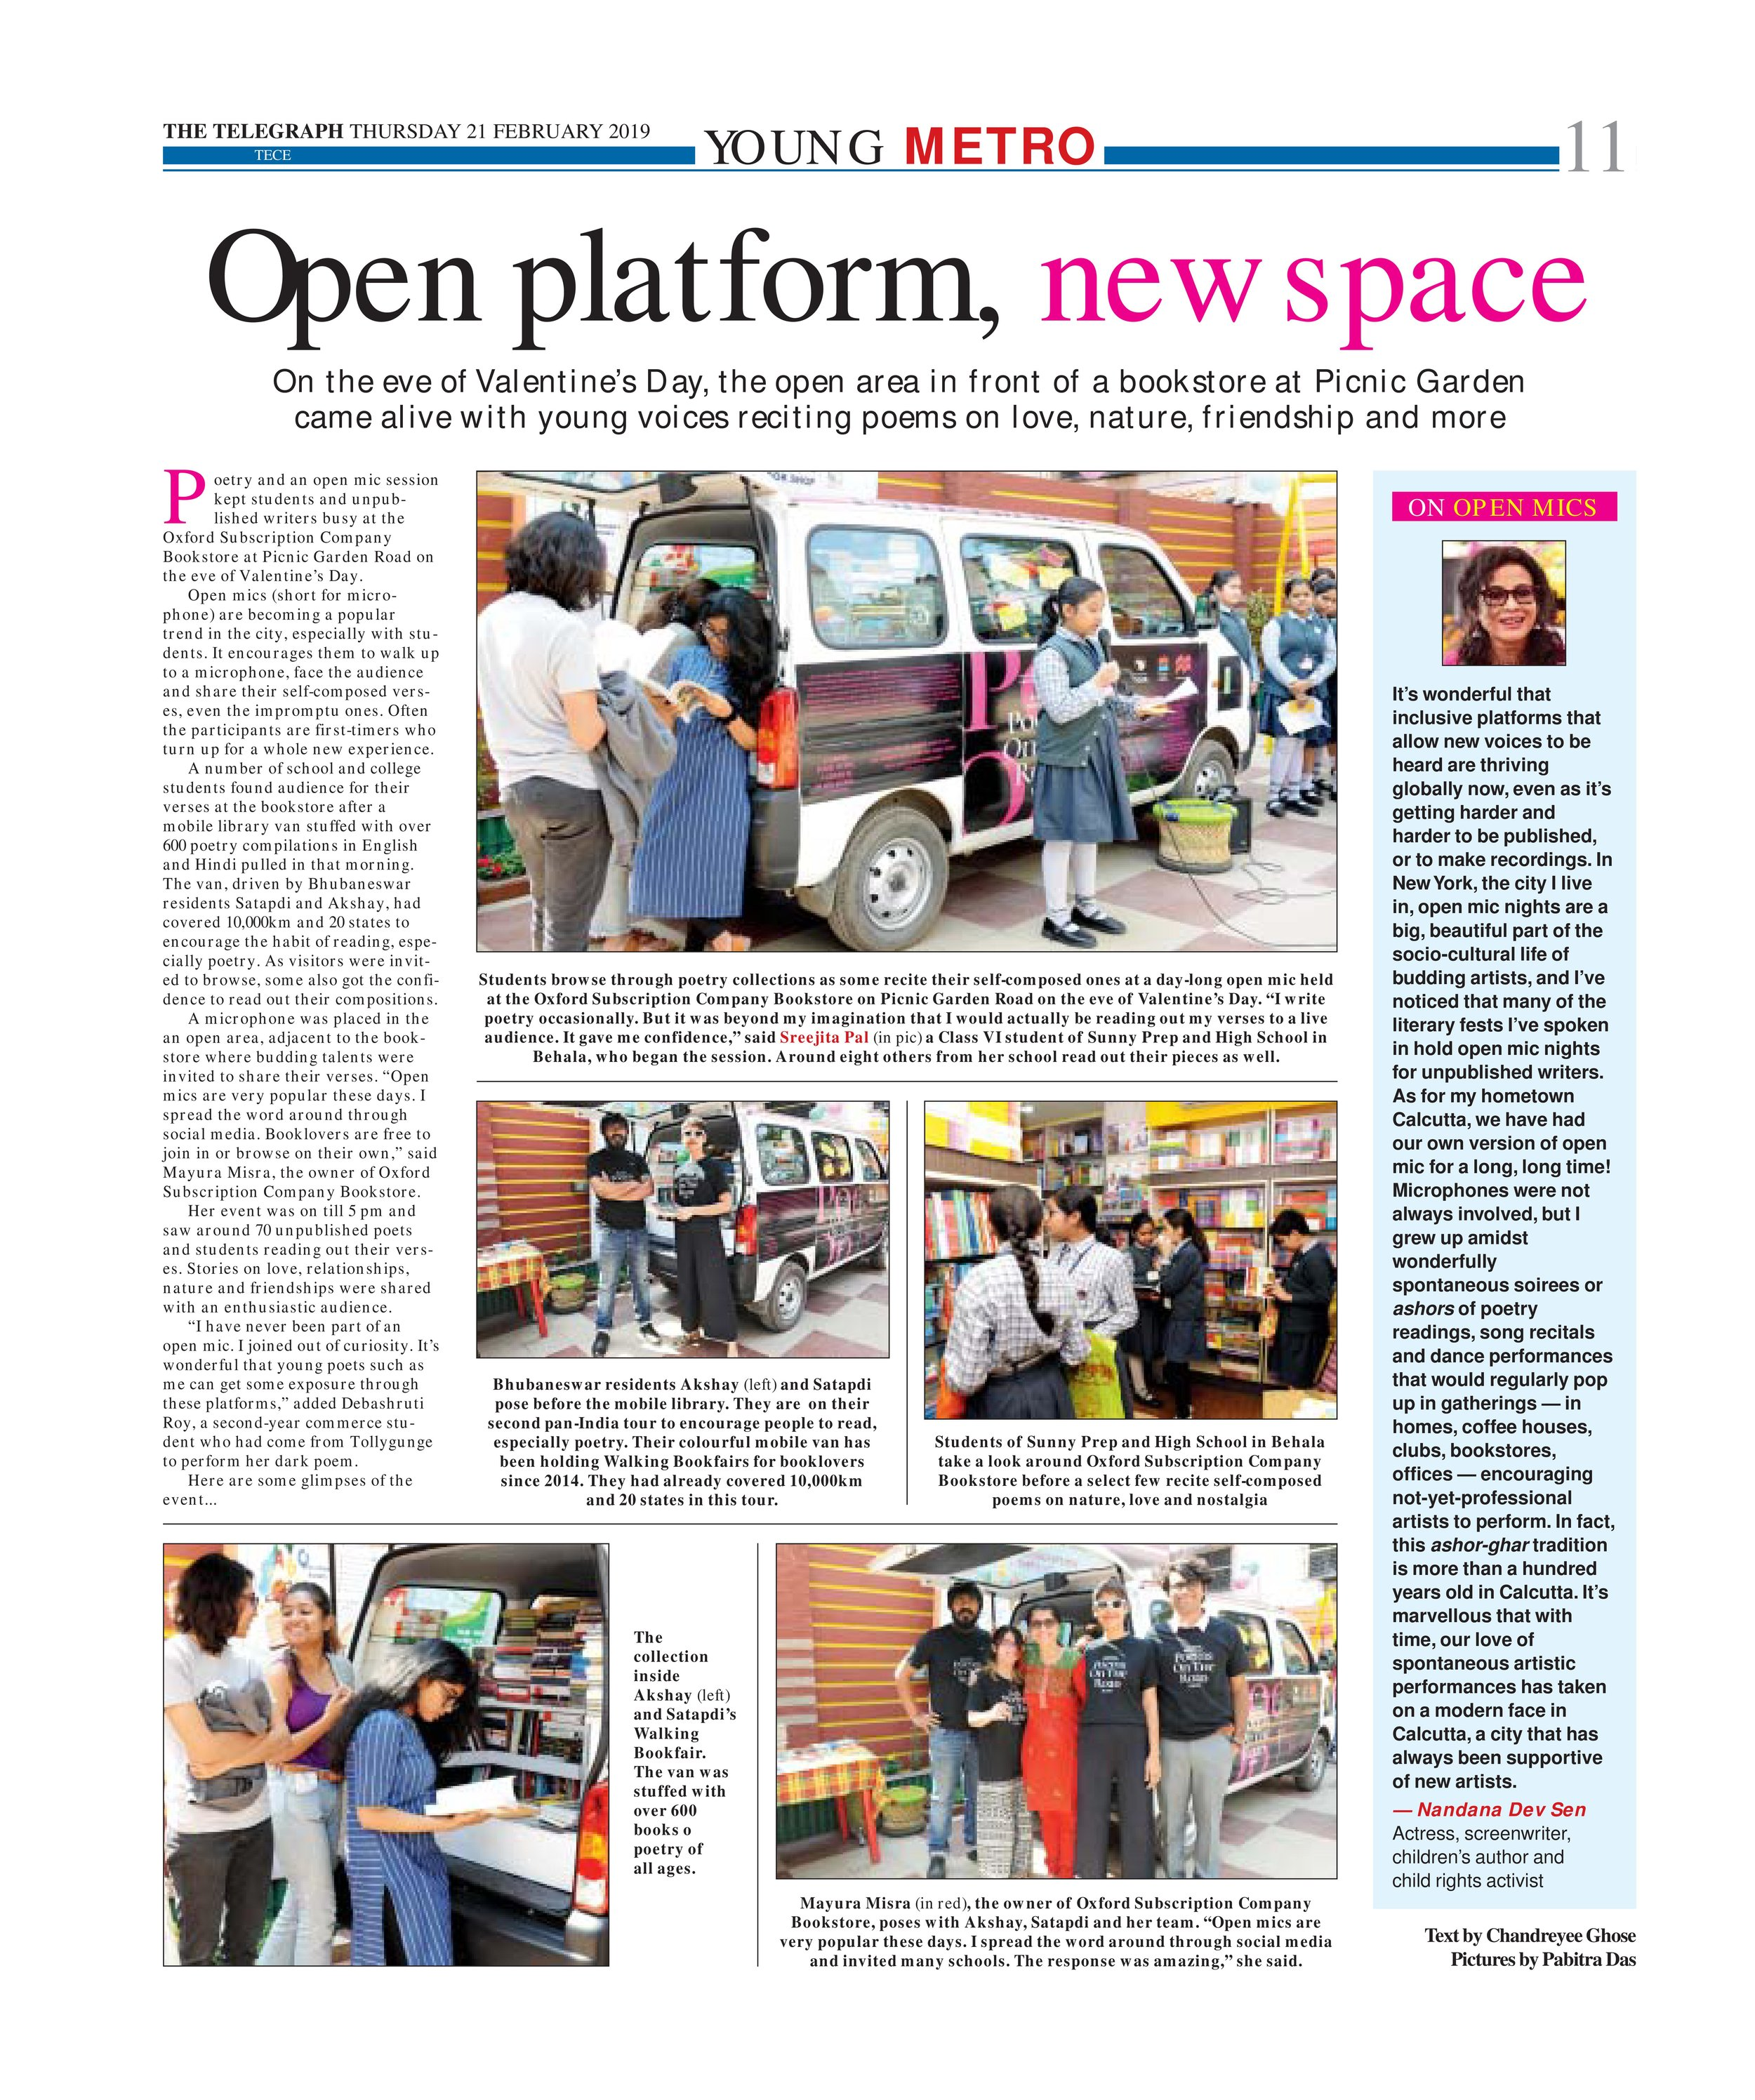 Open mic sessions offer voice to the unpublished - click for full story  The Telegraph, February 21, 2019